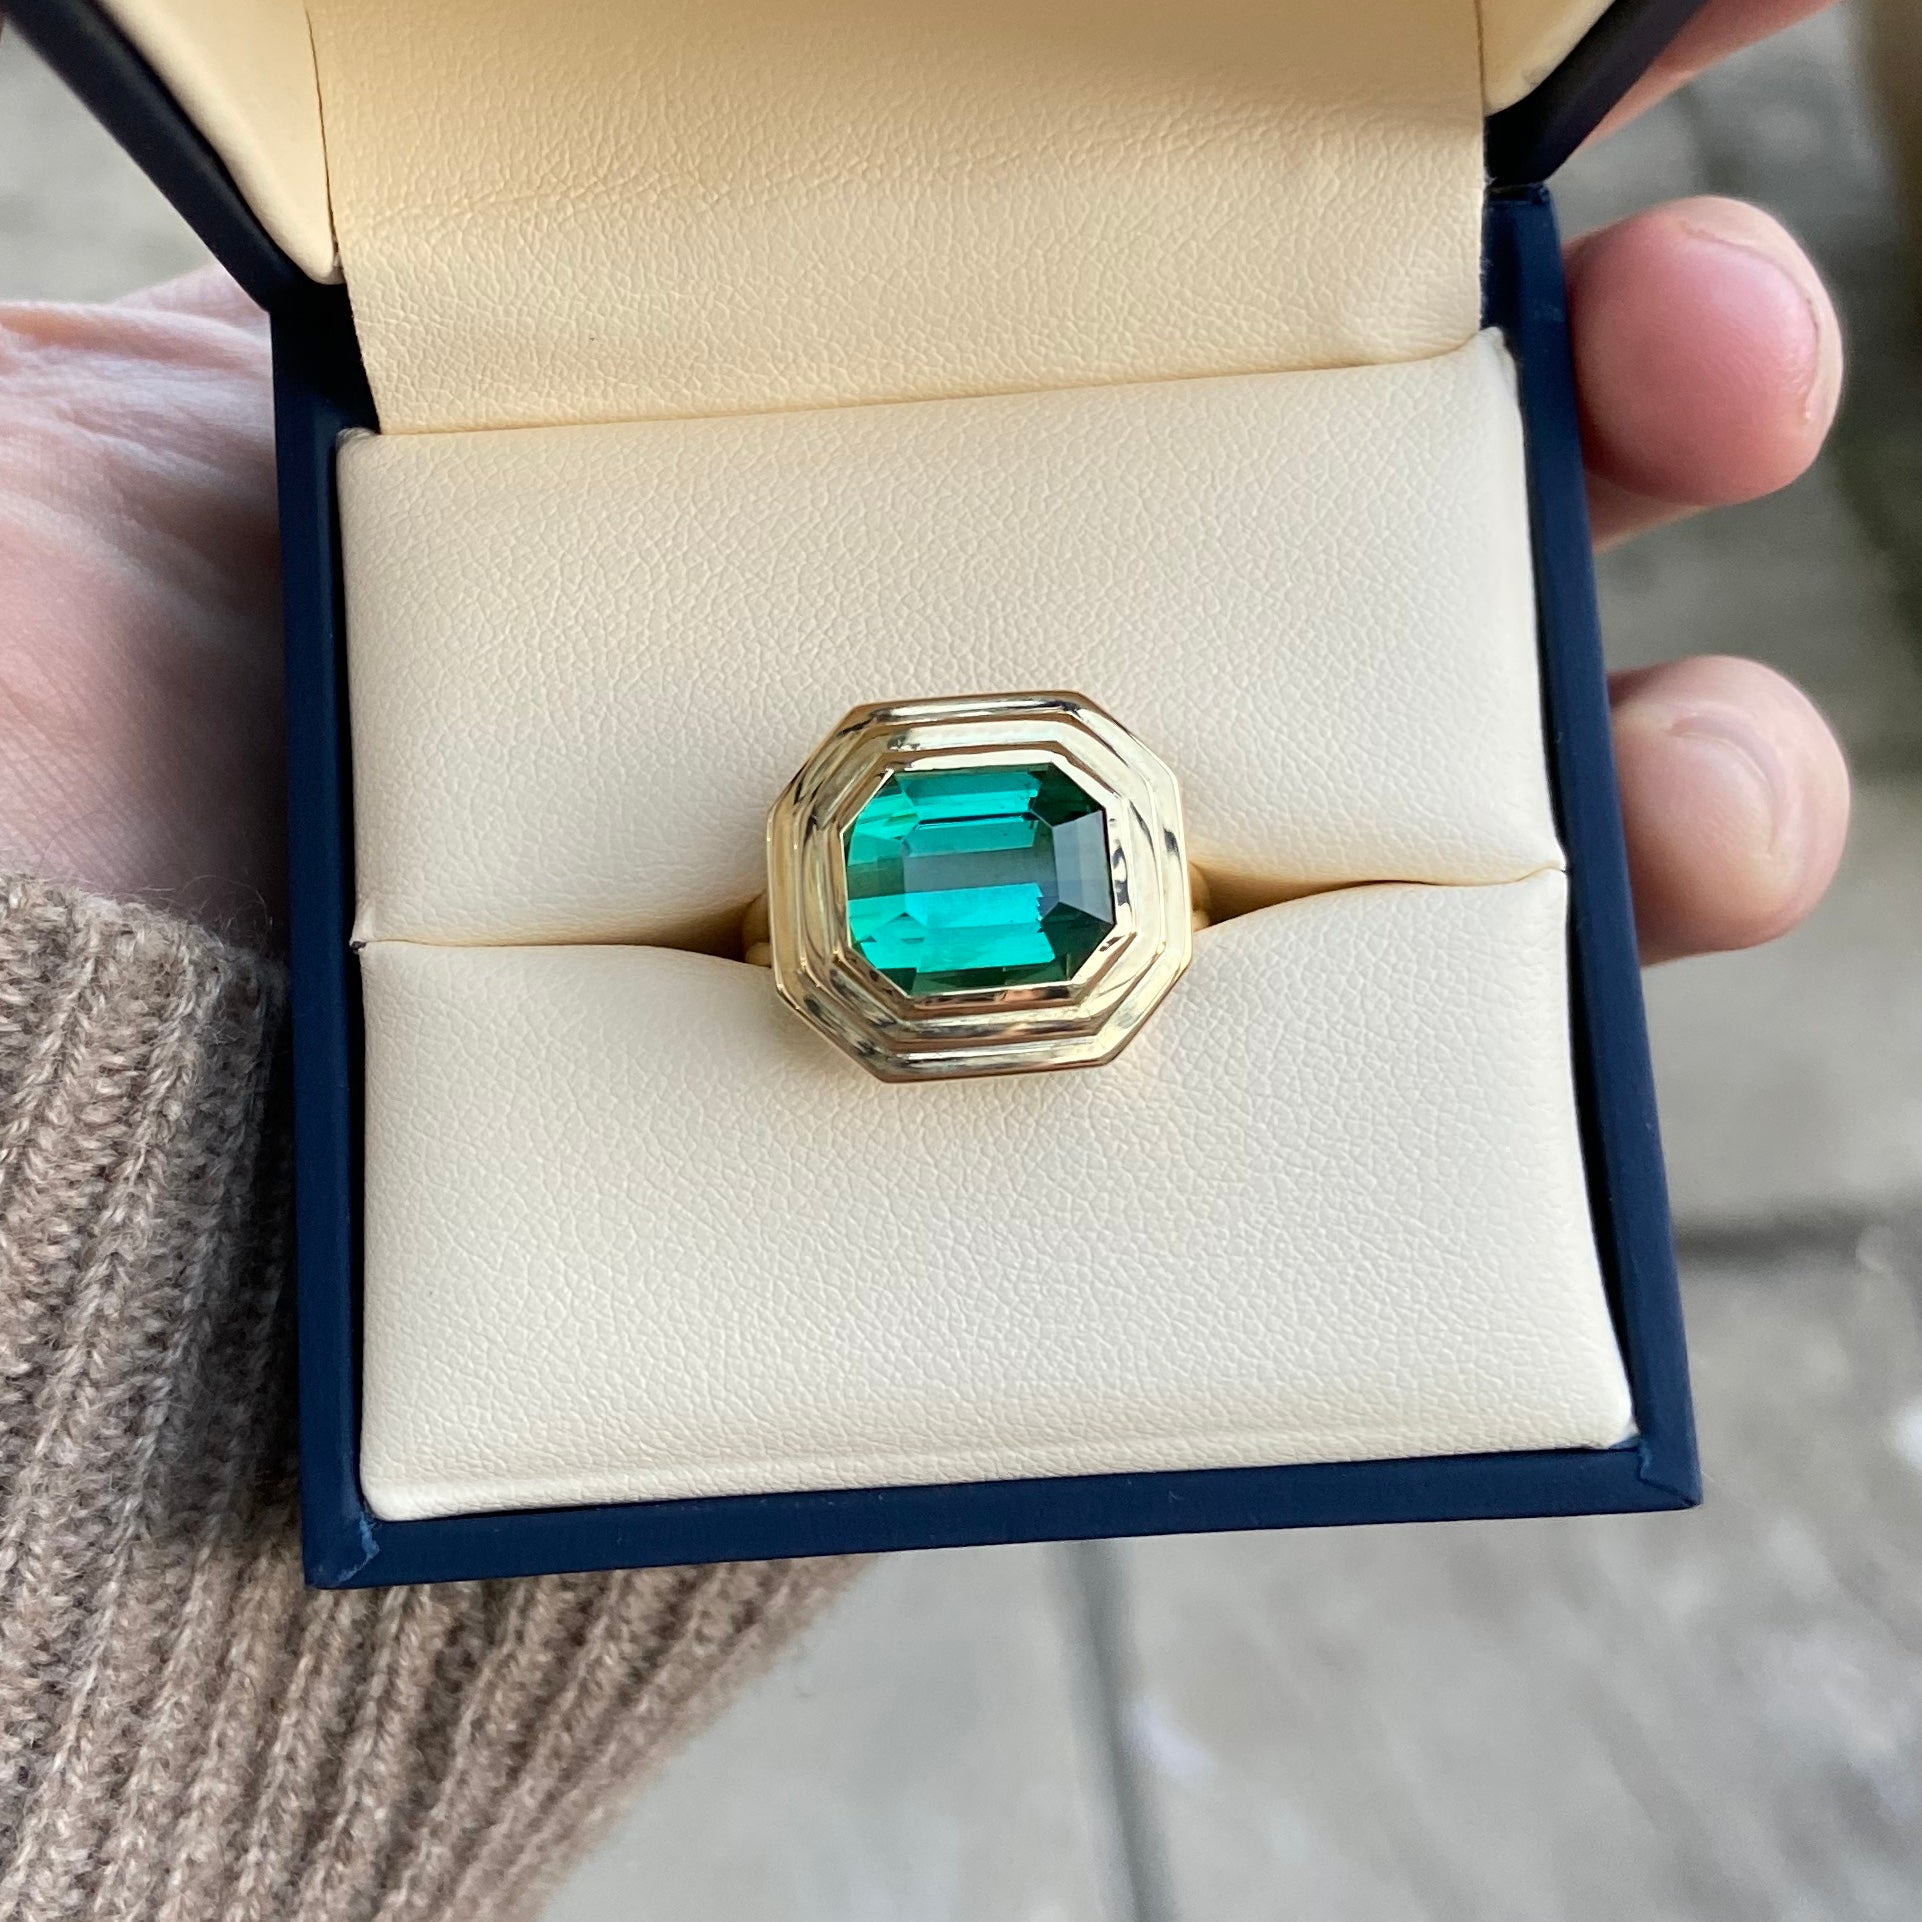 Bespoke: Tourmaline Ring